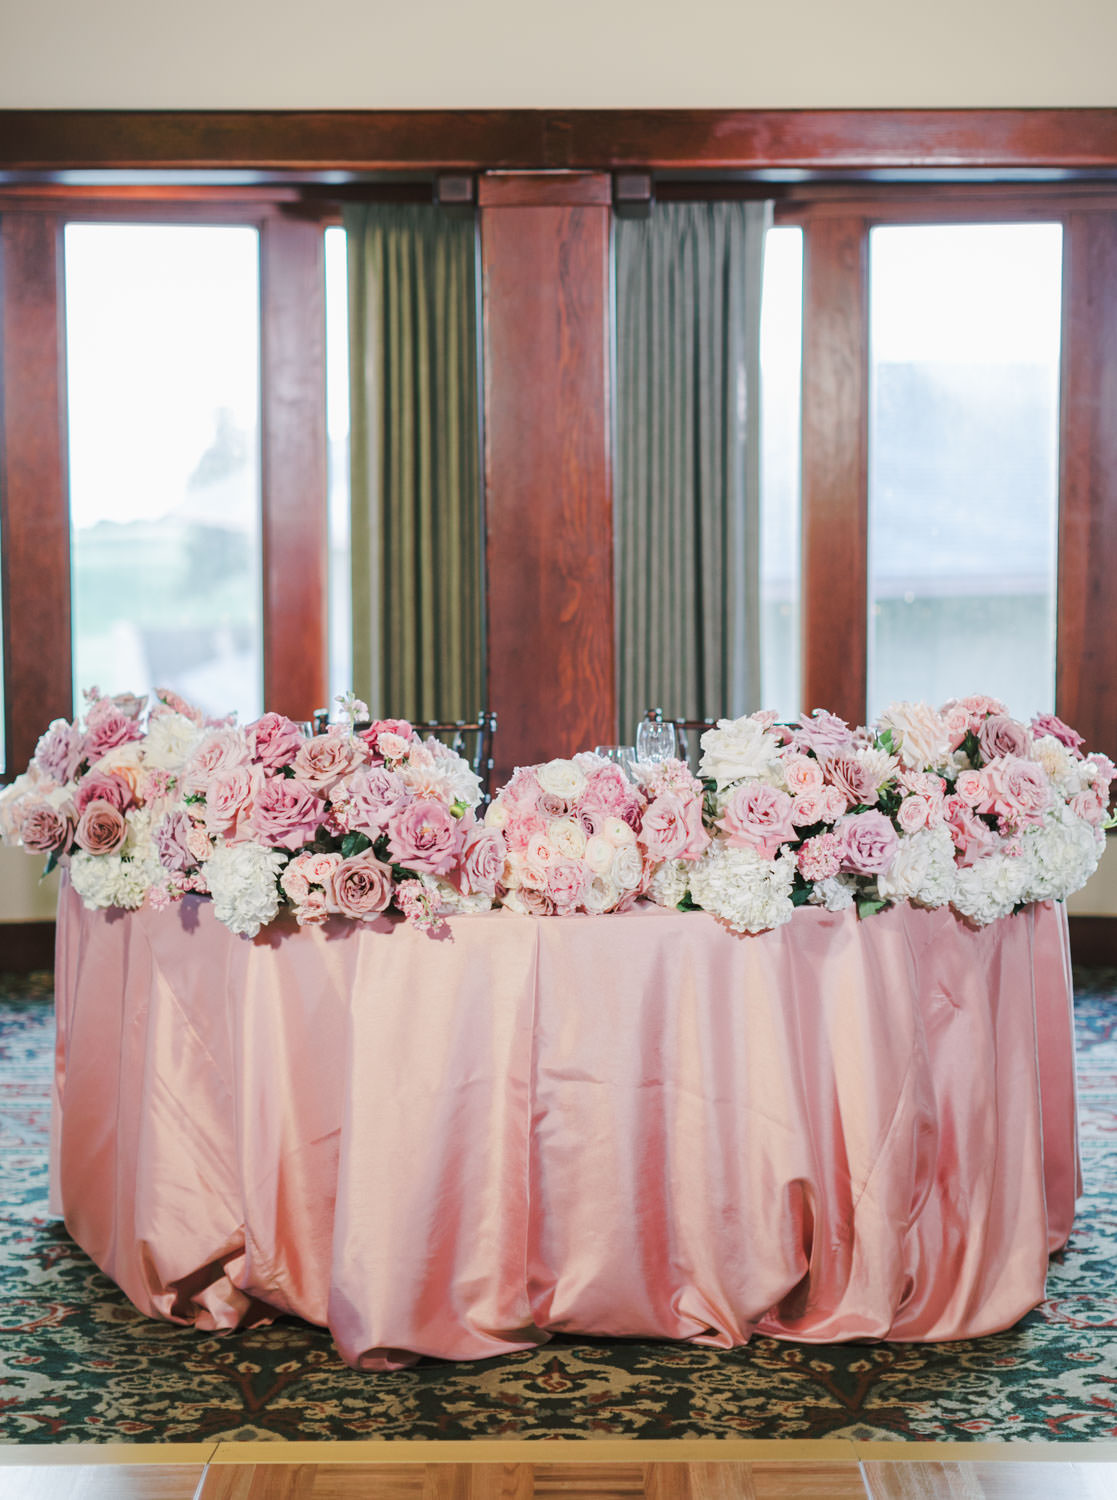 Ballroom wedding with pink linens, dark wooden chiavari chairs, and centerpieces with pink, lavender, and white flowers, The Lodge at Torrey Pines wedding, photography by Cavin Elizabeth Photography